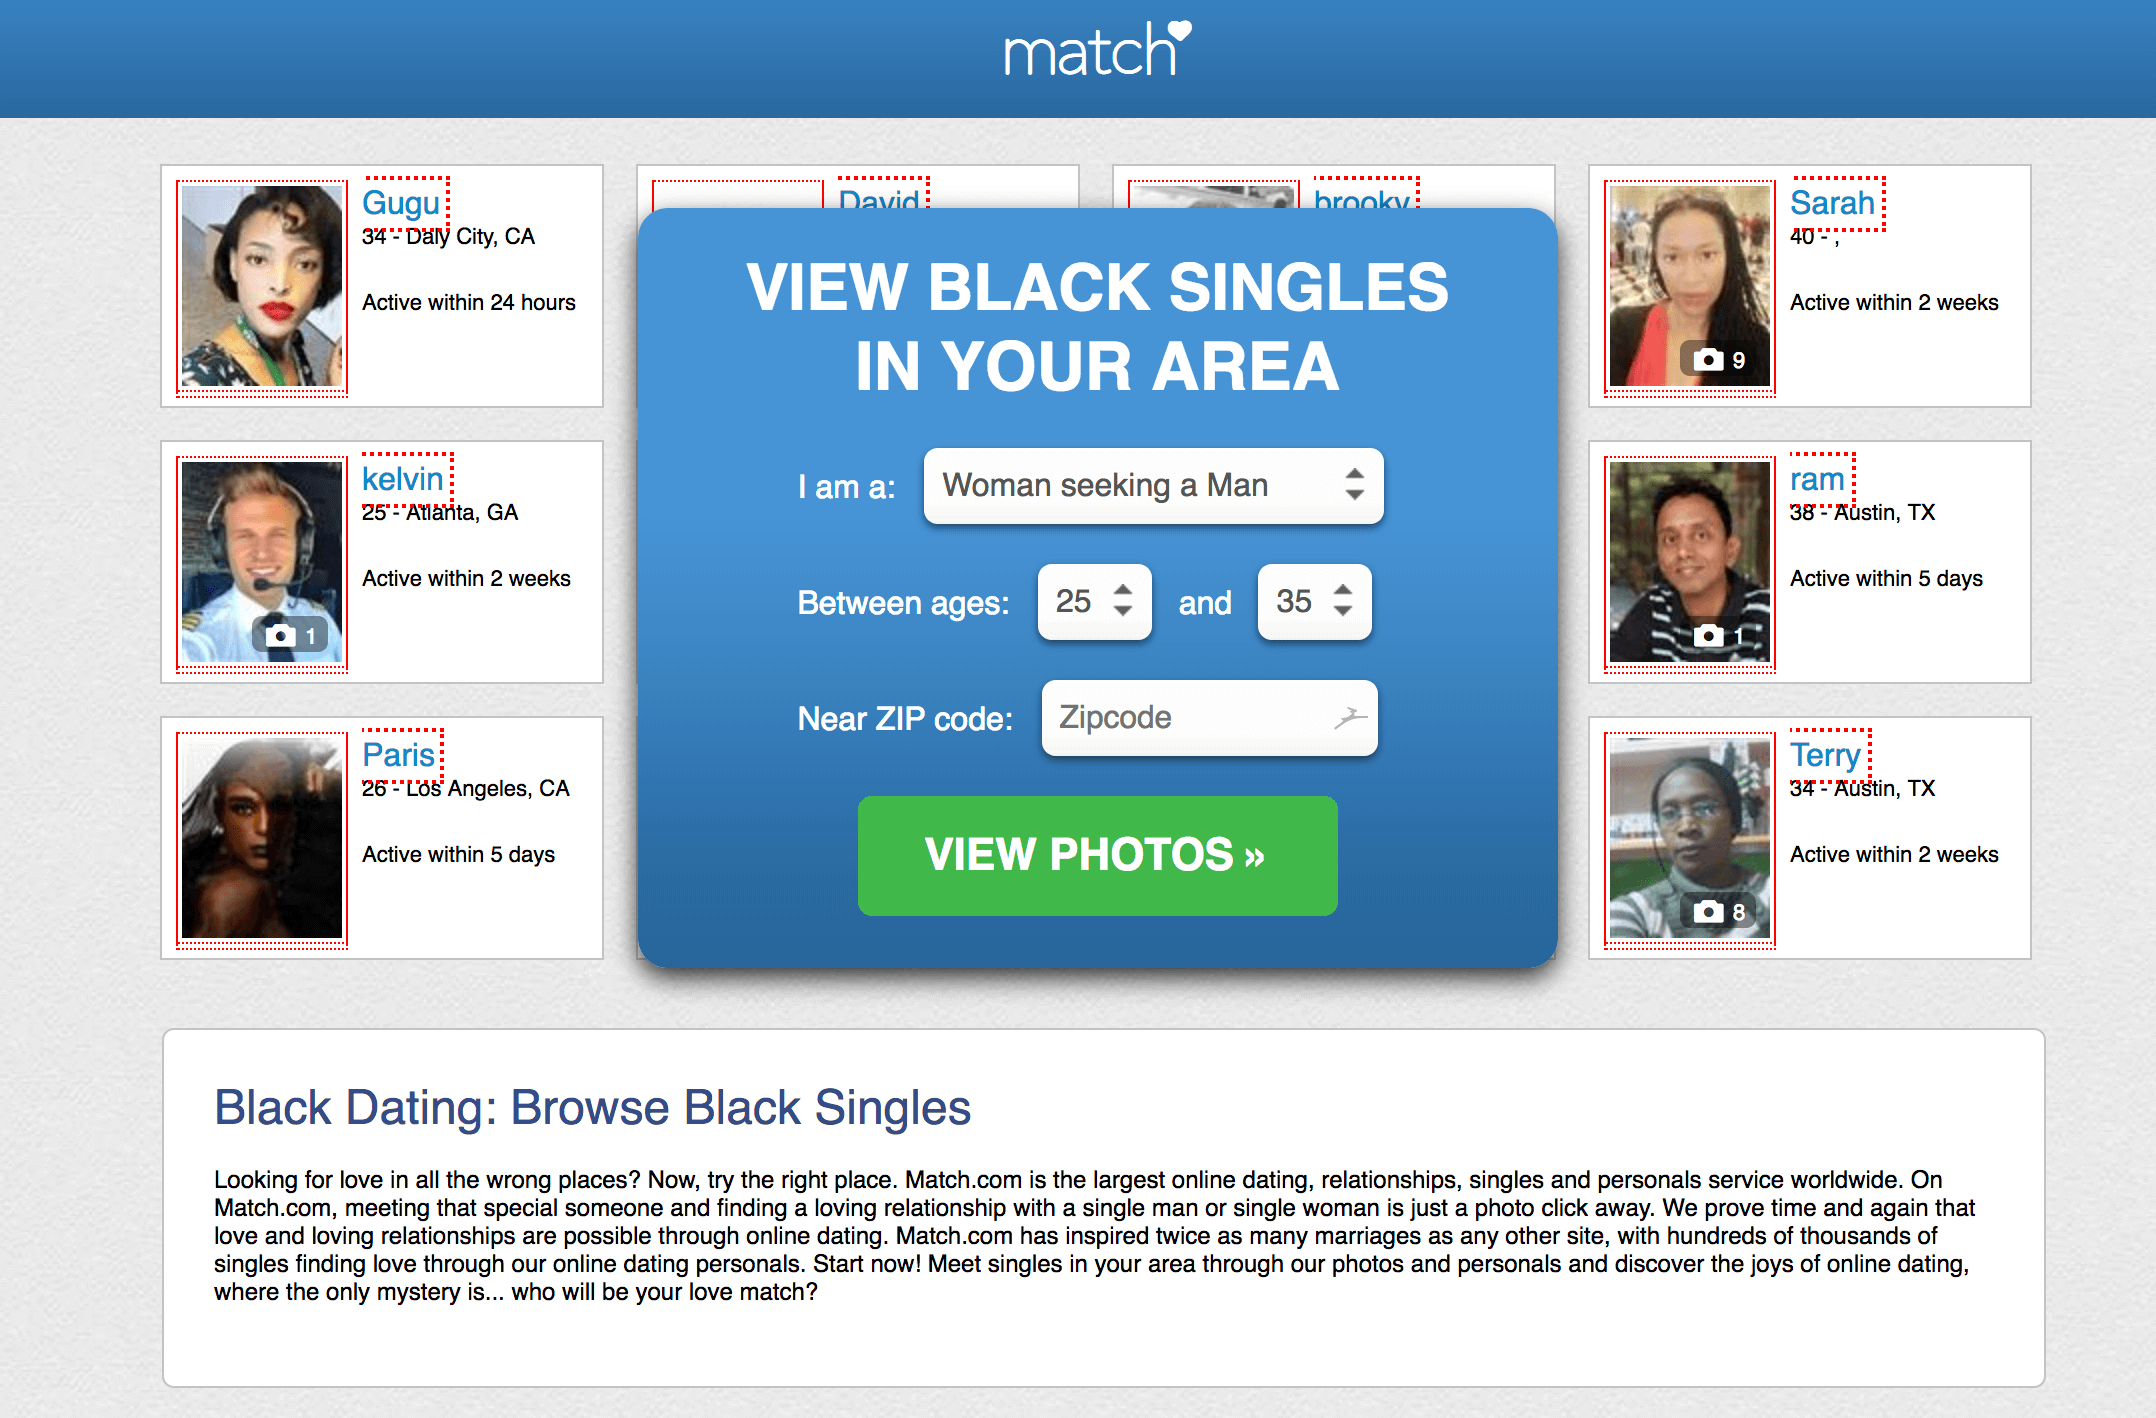 Match-com-black-dating-website